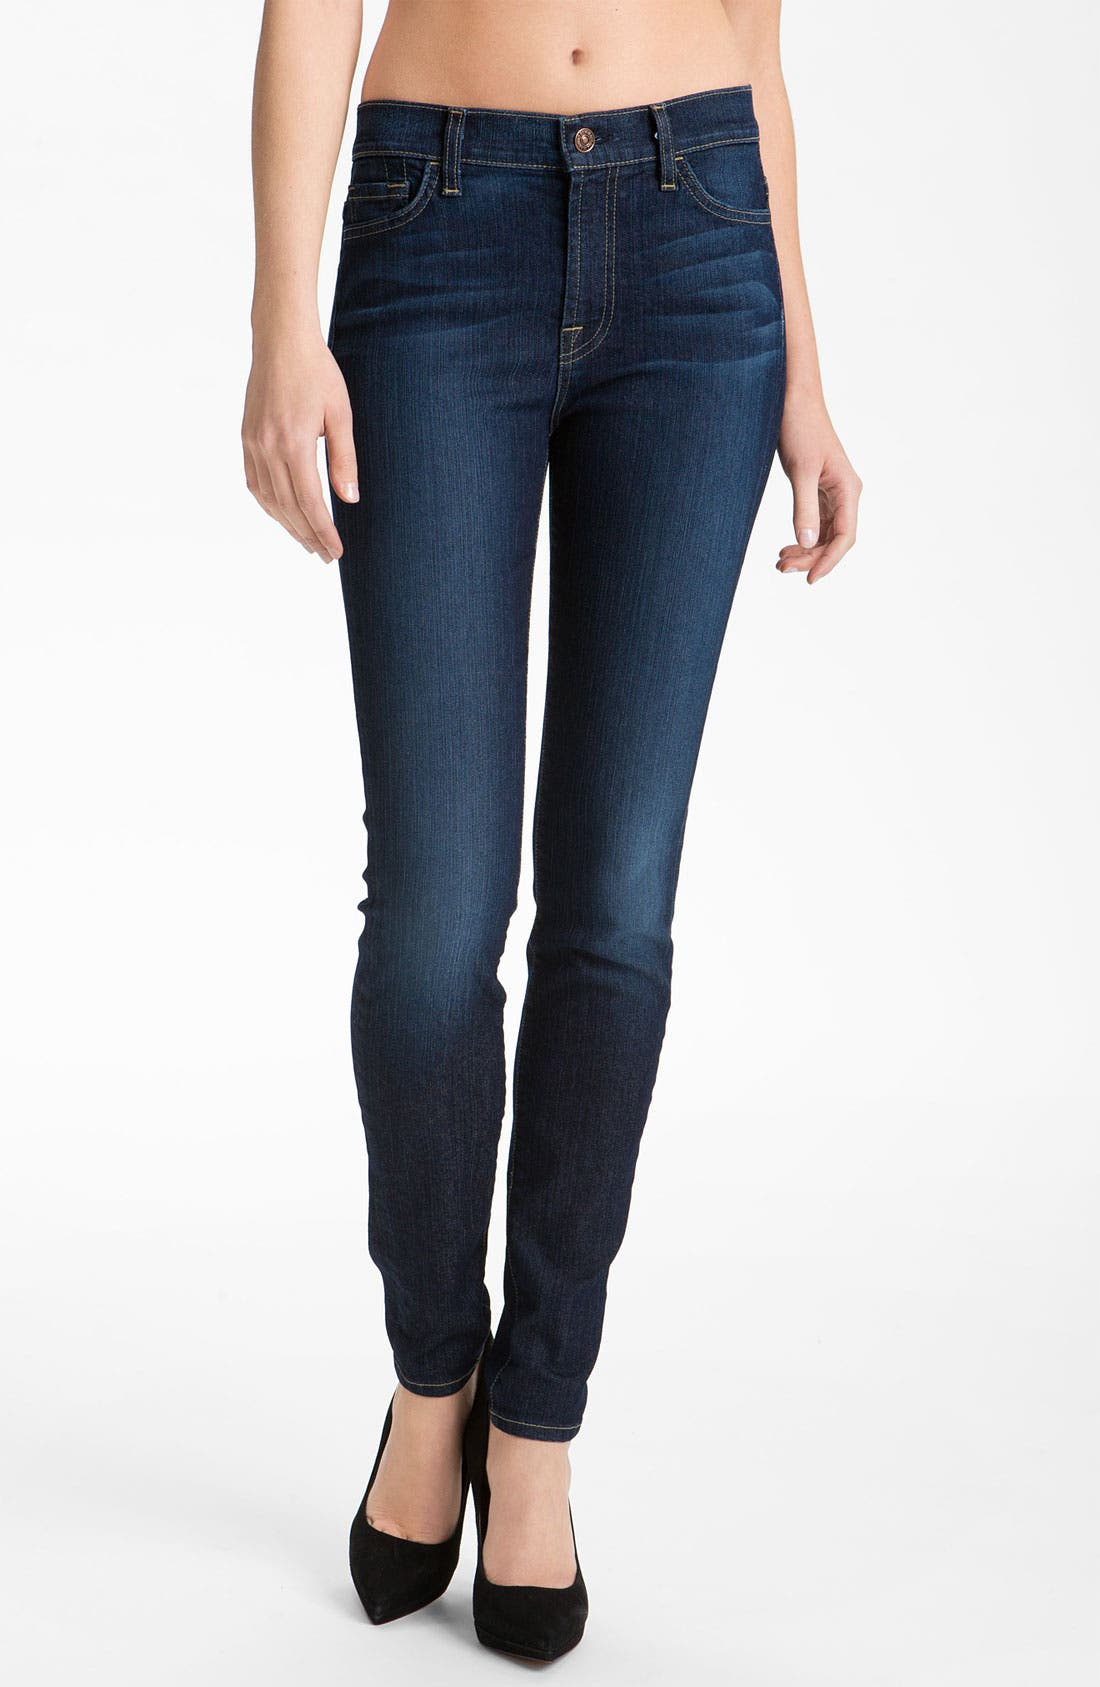 Alternate Image 1 Selected - 7 For All Mankind® 'The Skinny' Stretch Jeans (Rich Warm Blue) (Online Exclusive)